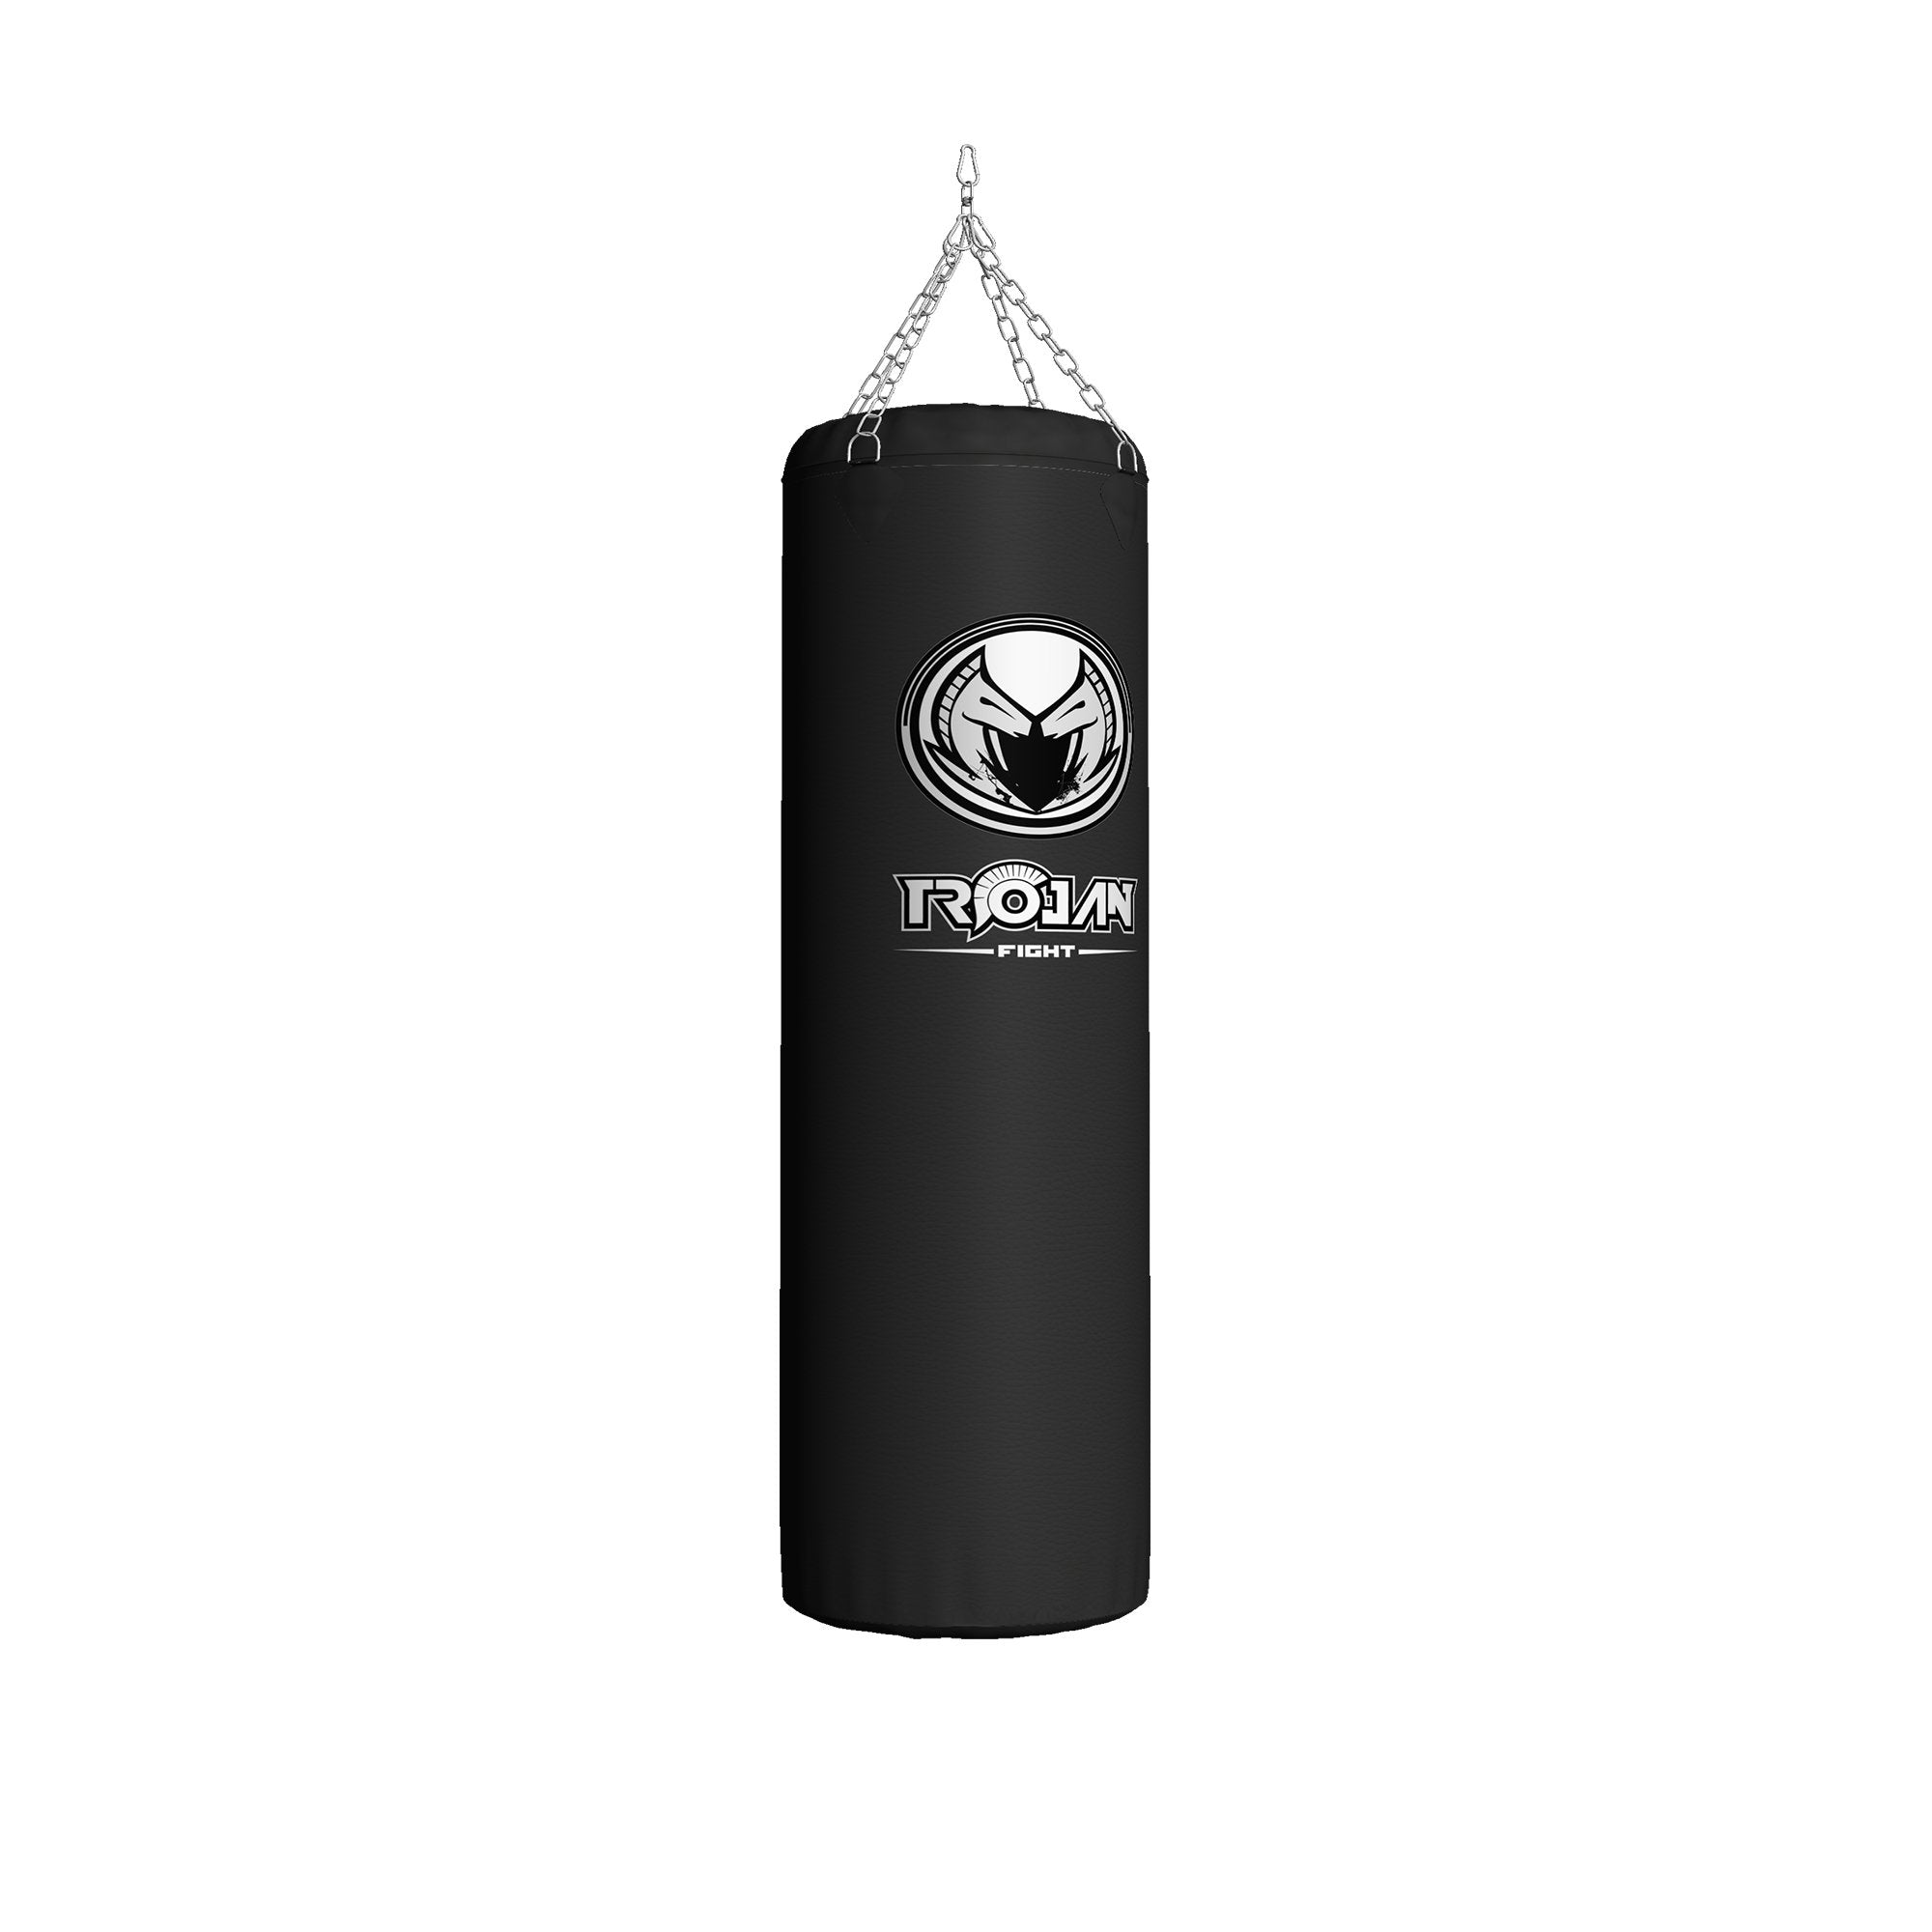 HEAVY BAG 45DIAM | PRO 40KG - Trojan Fight.com | TrojanFight Boxing